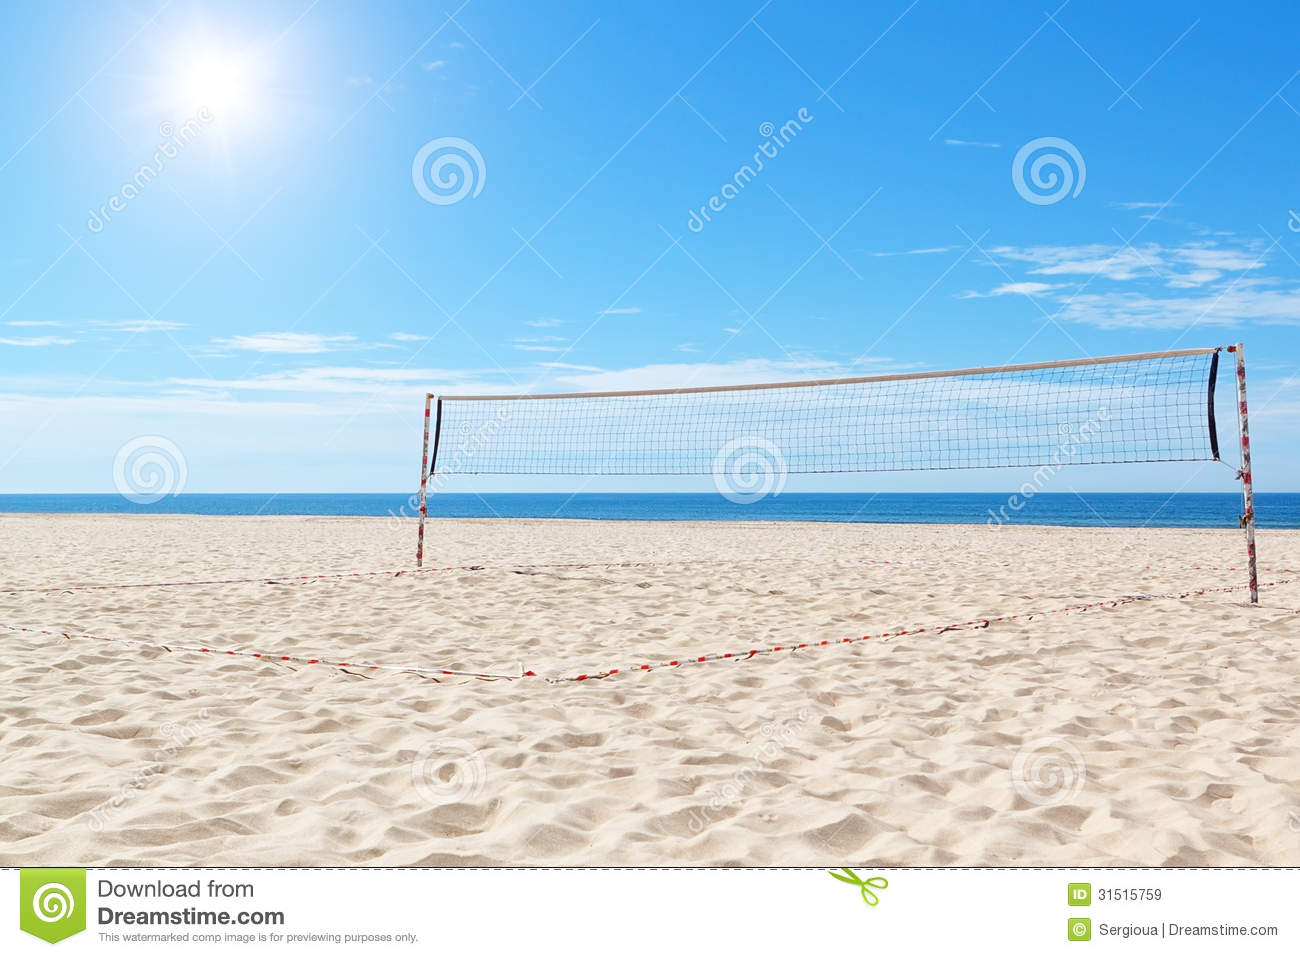 Beach A Volleyball Court At Sea Stock Image Image Of Post Fitness 31515759